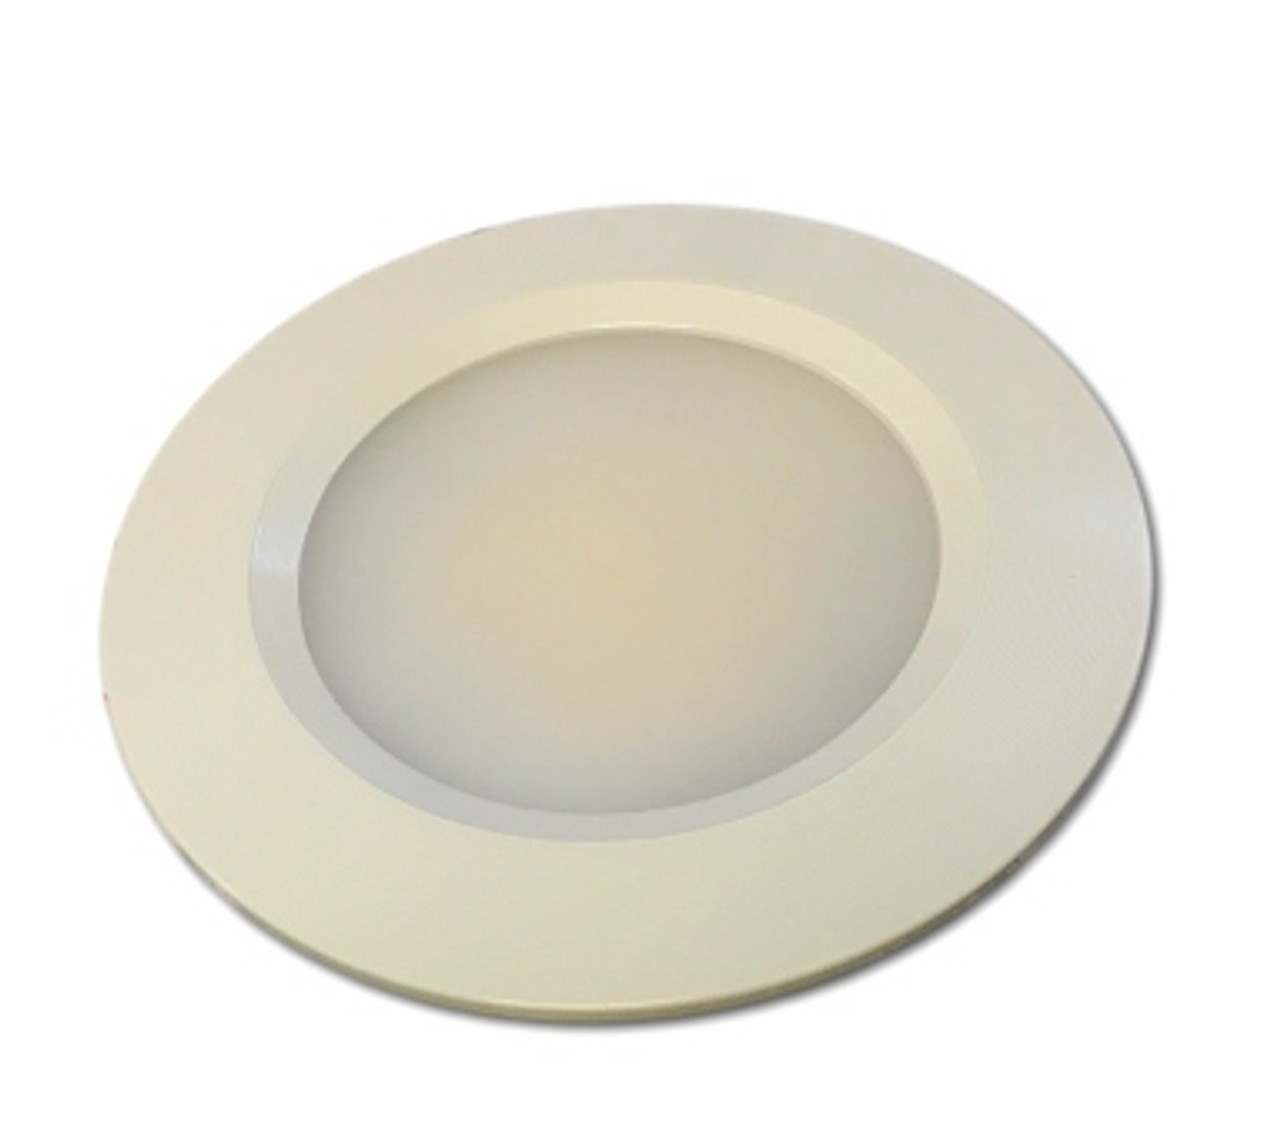 White Bezel - 12V LED Recessed Ceiling Light Fixture